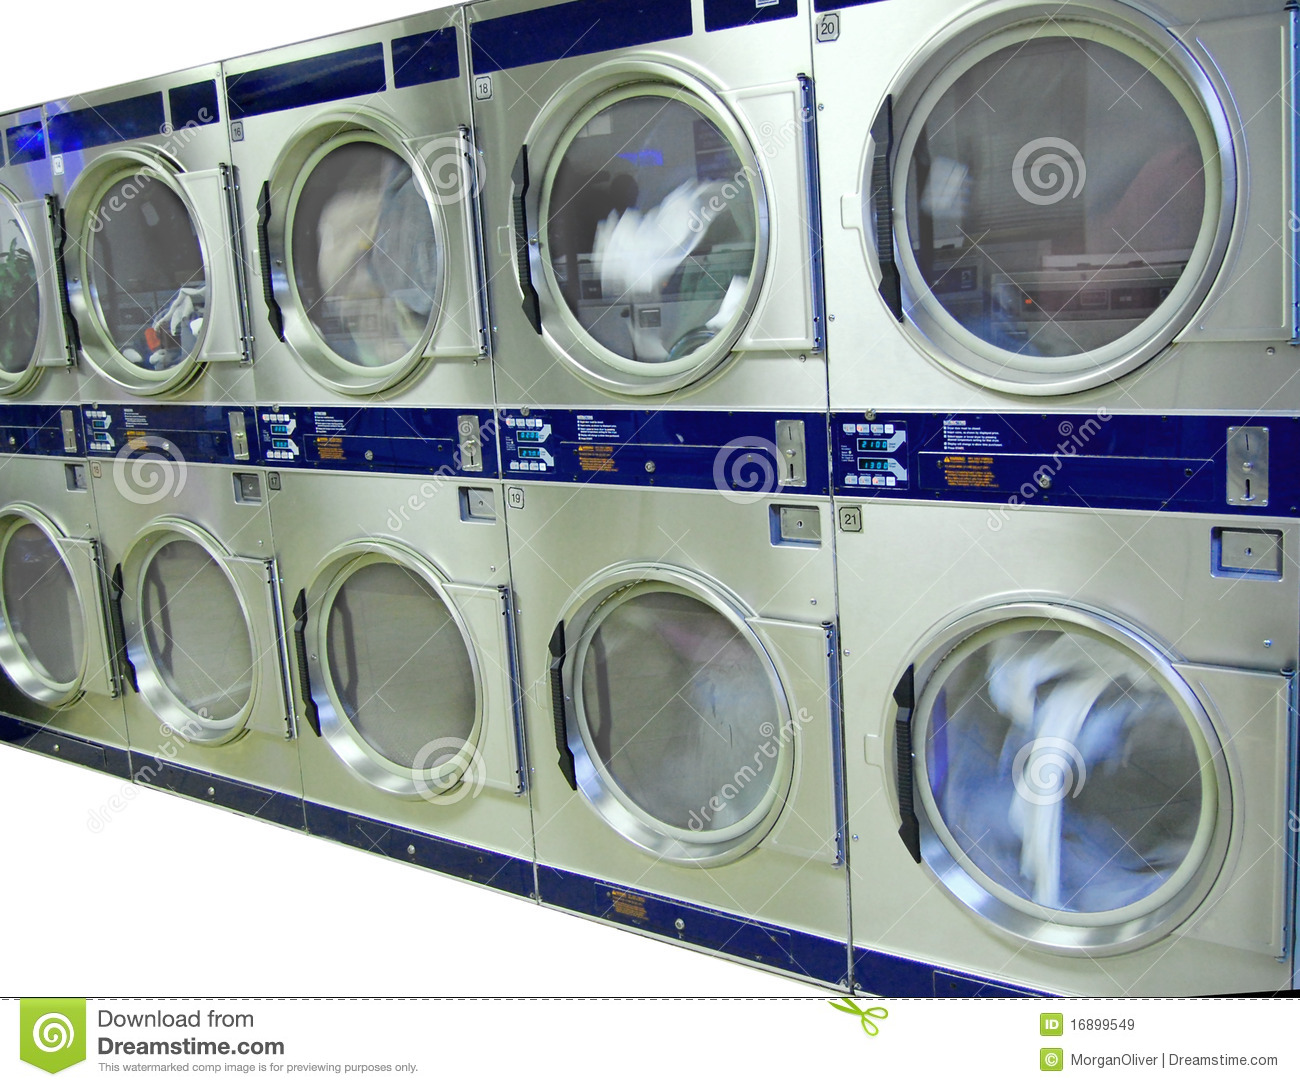 Managing a Coin Laundry Business